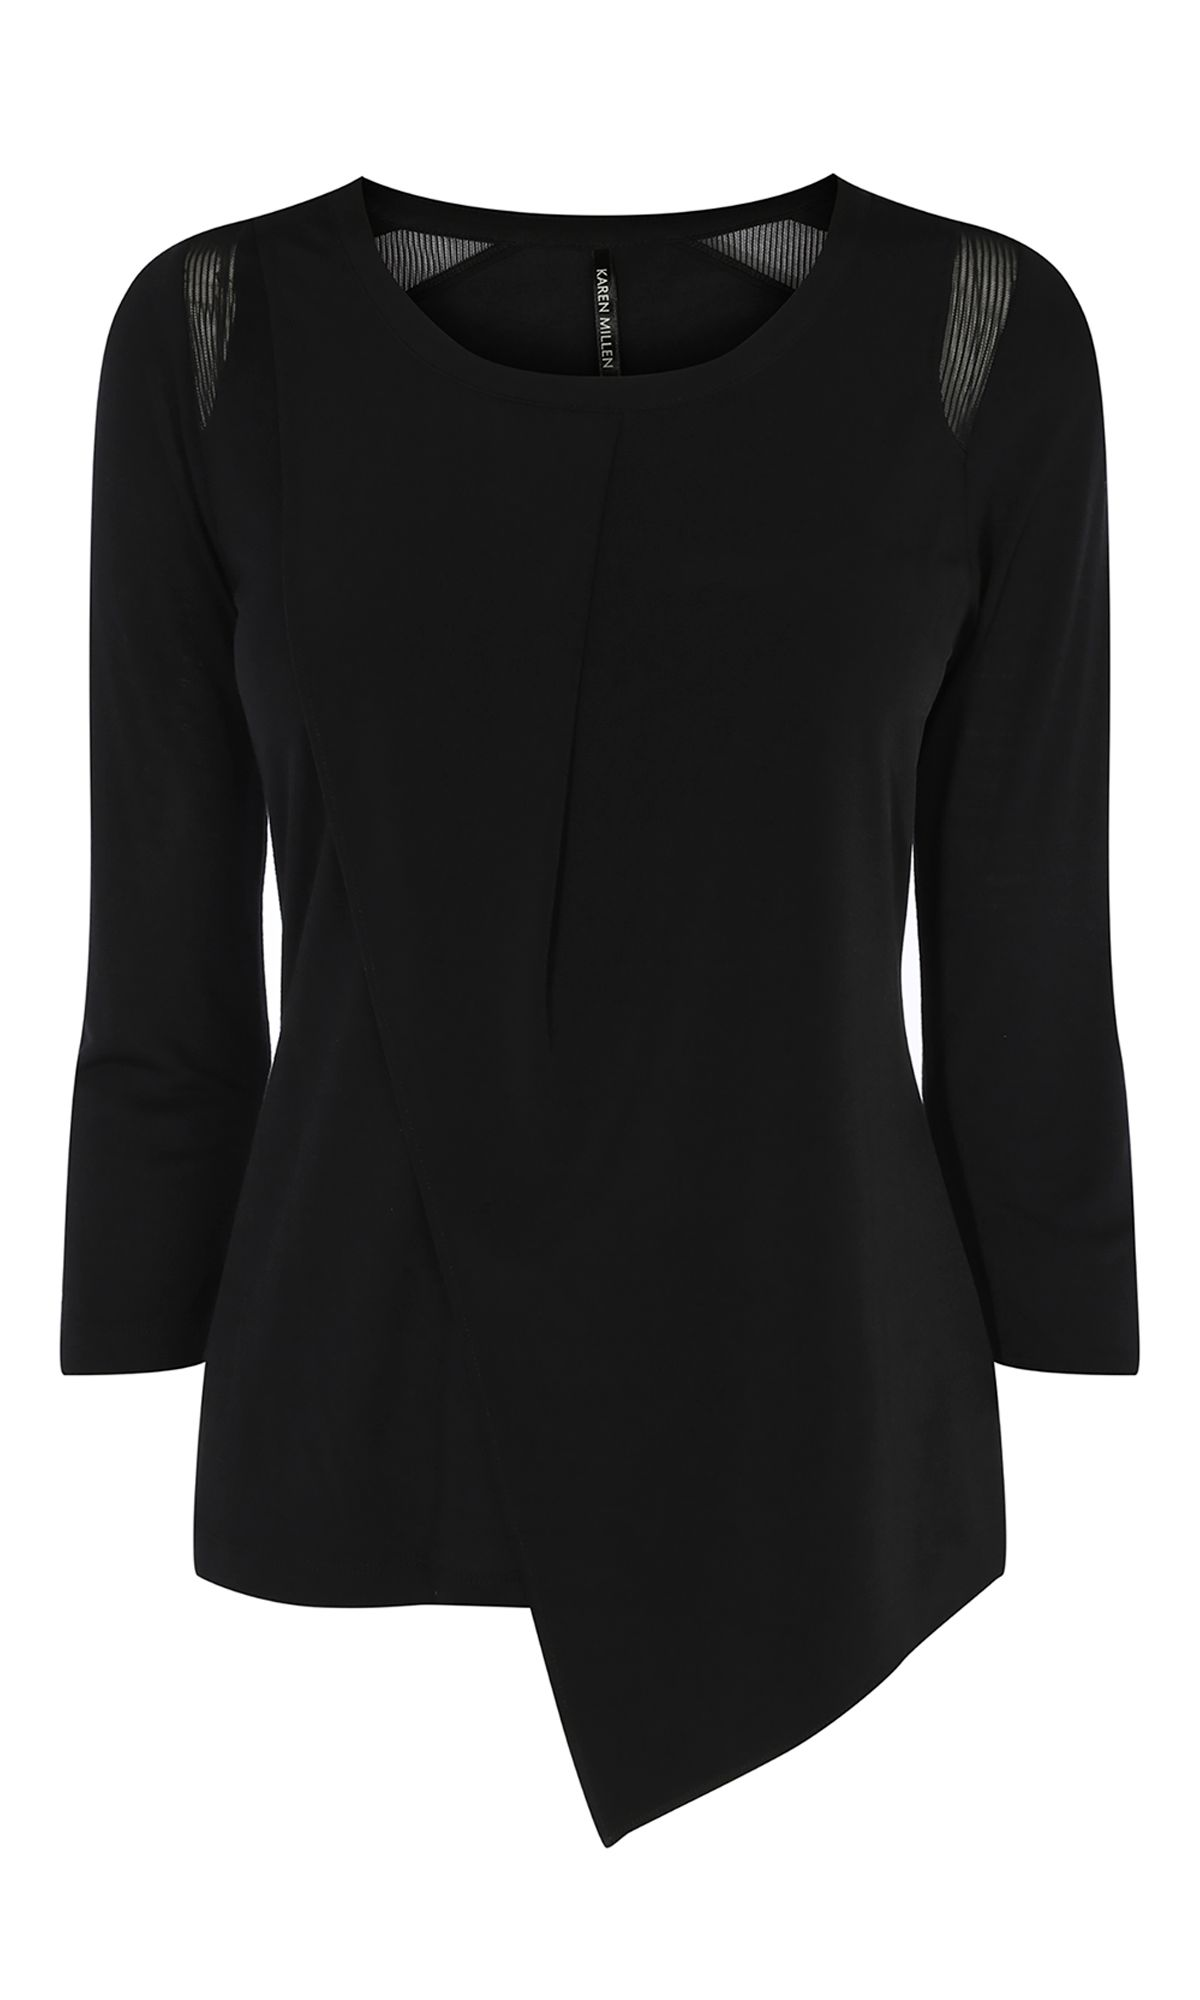 Karen Millen Layered Sleeveless Top, Black.